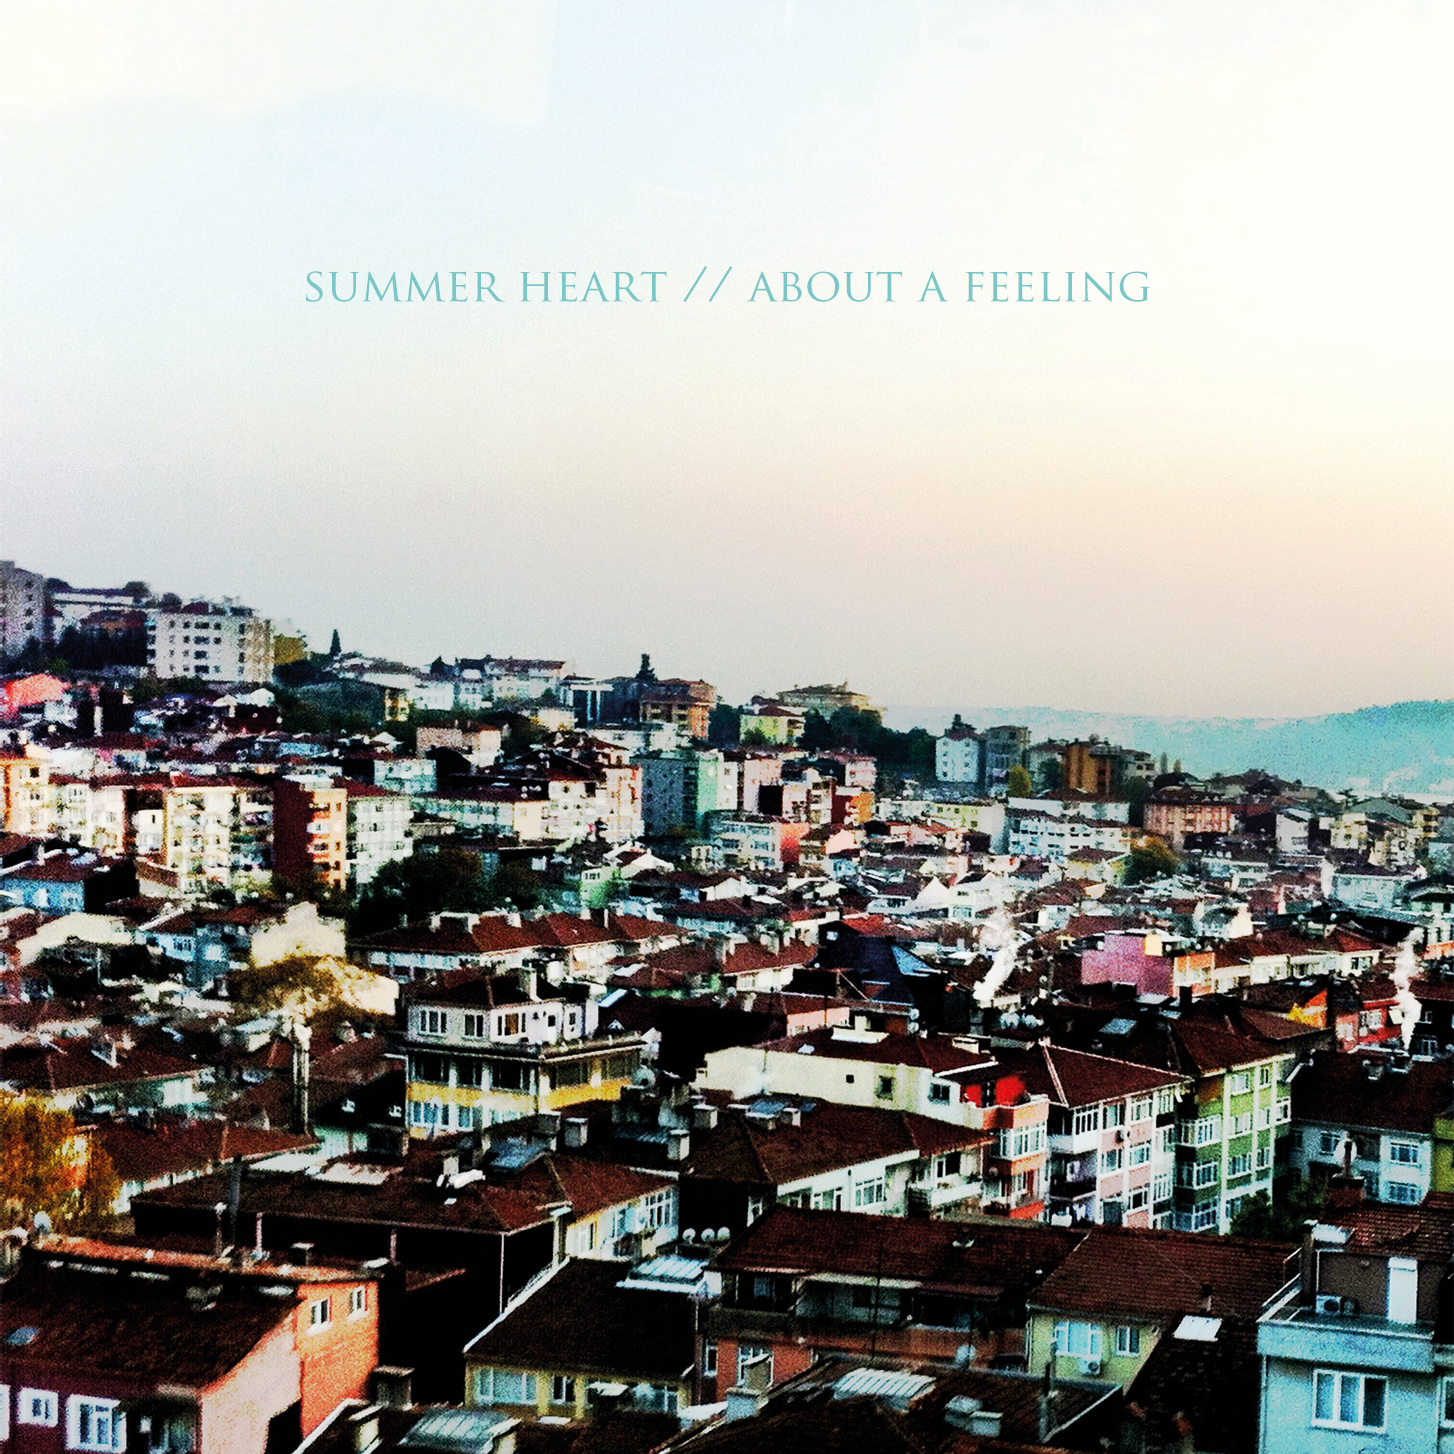 Summer Heart - About a Feeling